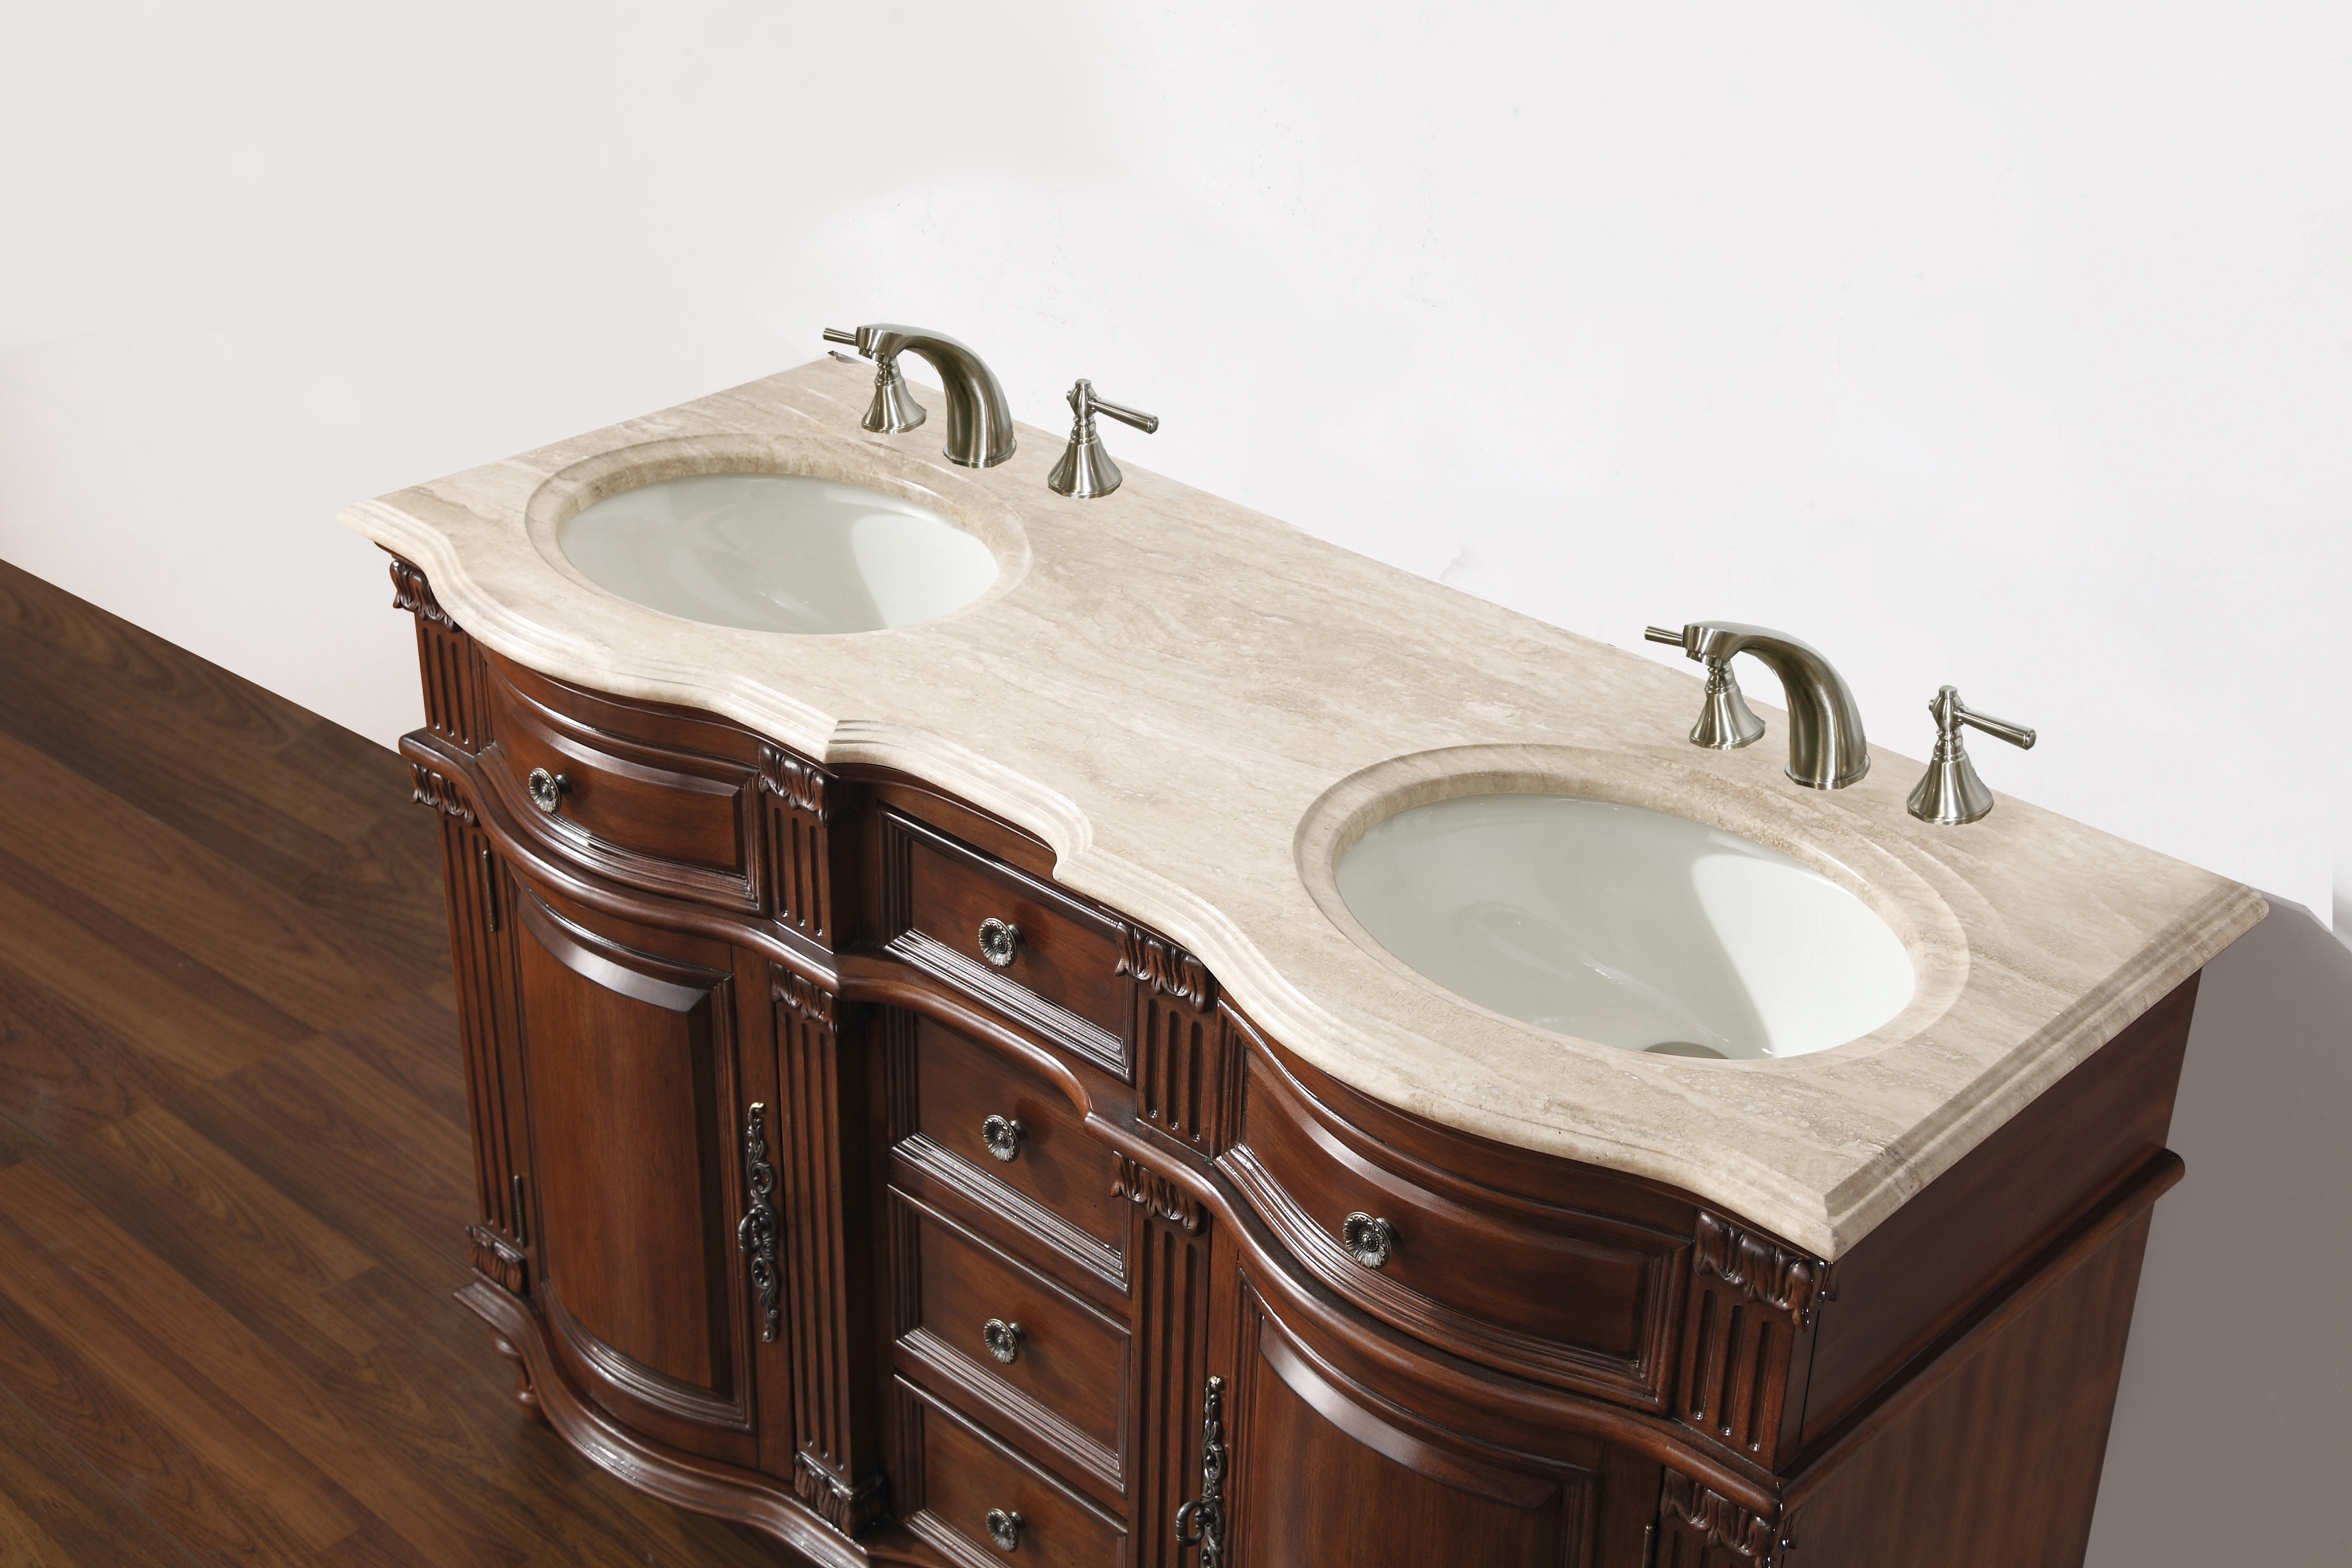 55inch norwalk vanity special vanity sale bathroom for Bathroom vanity tops for sale